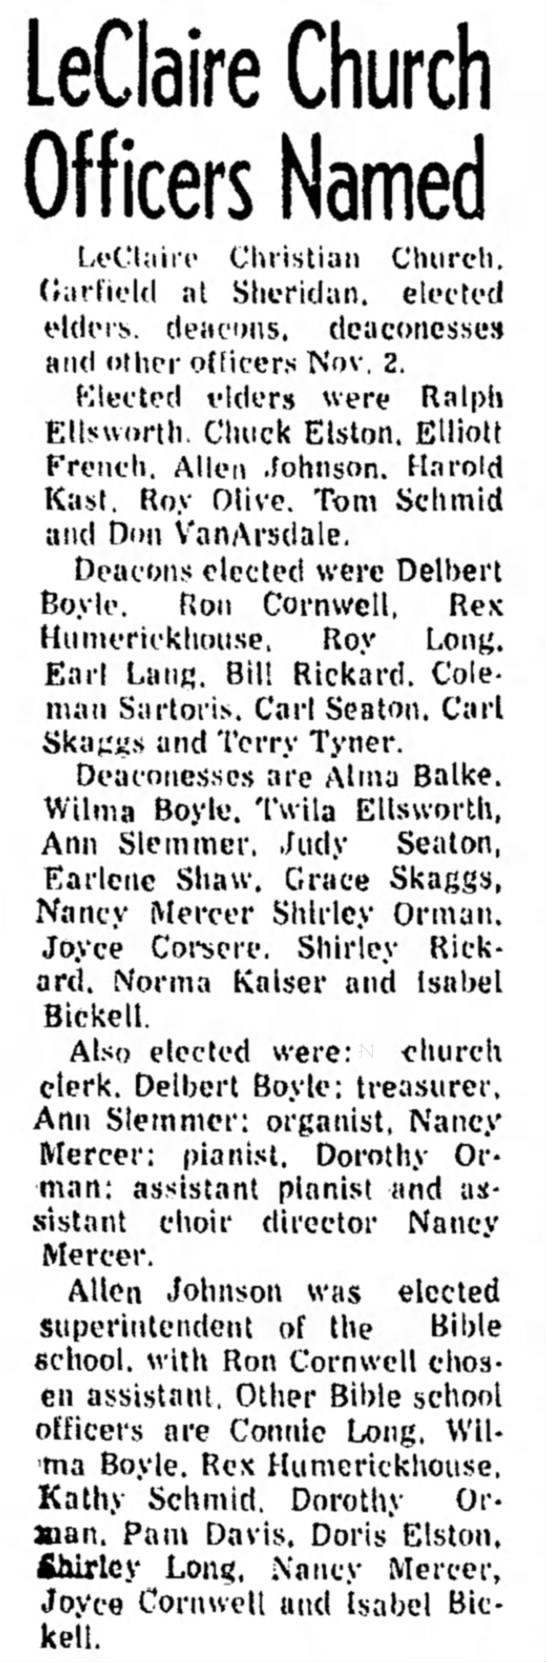 Nov. 7, 1975 LeClaire Church Officers Named